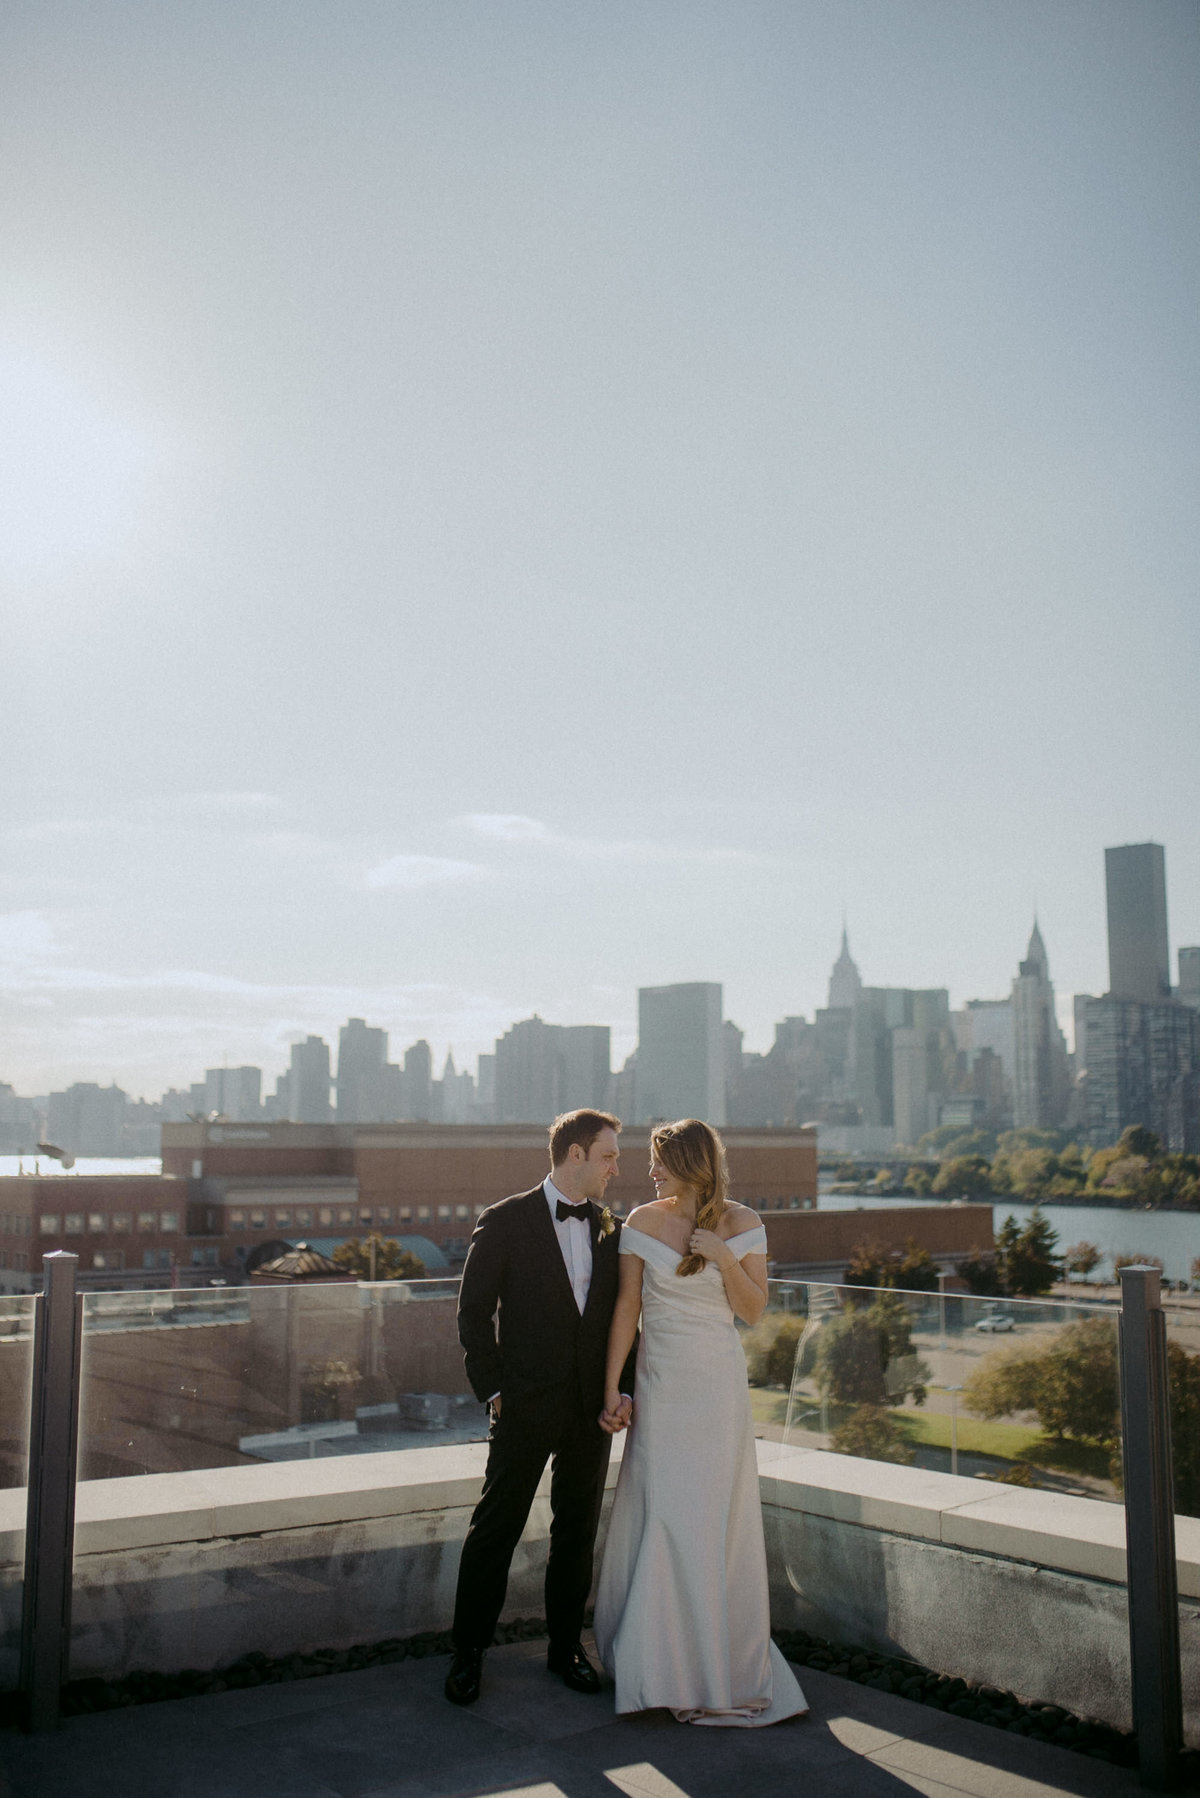 bordone-lic-brooklyn-queens-wedding-photographer-0013